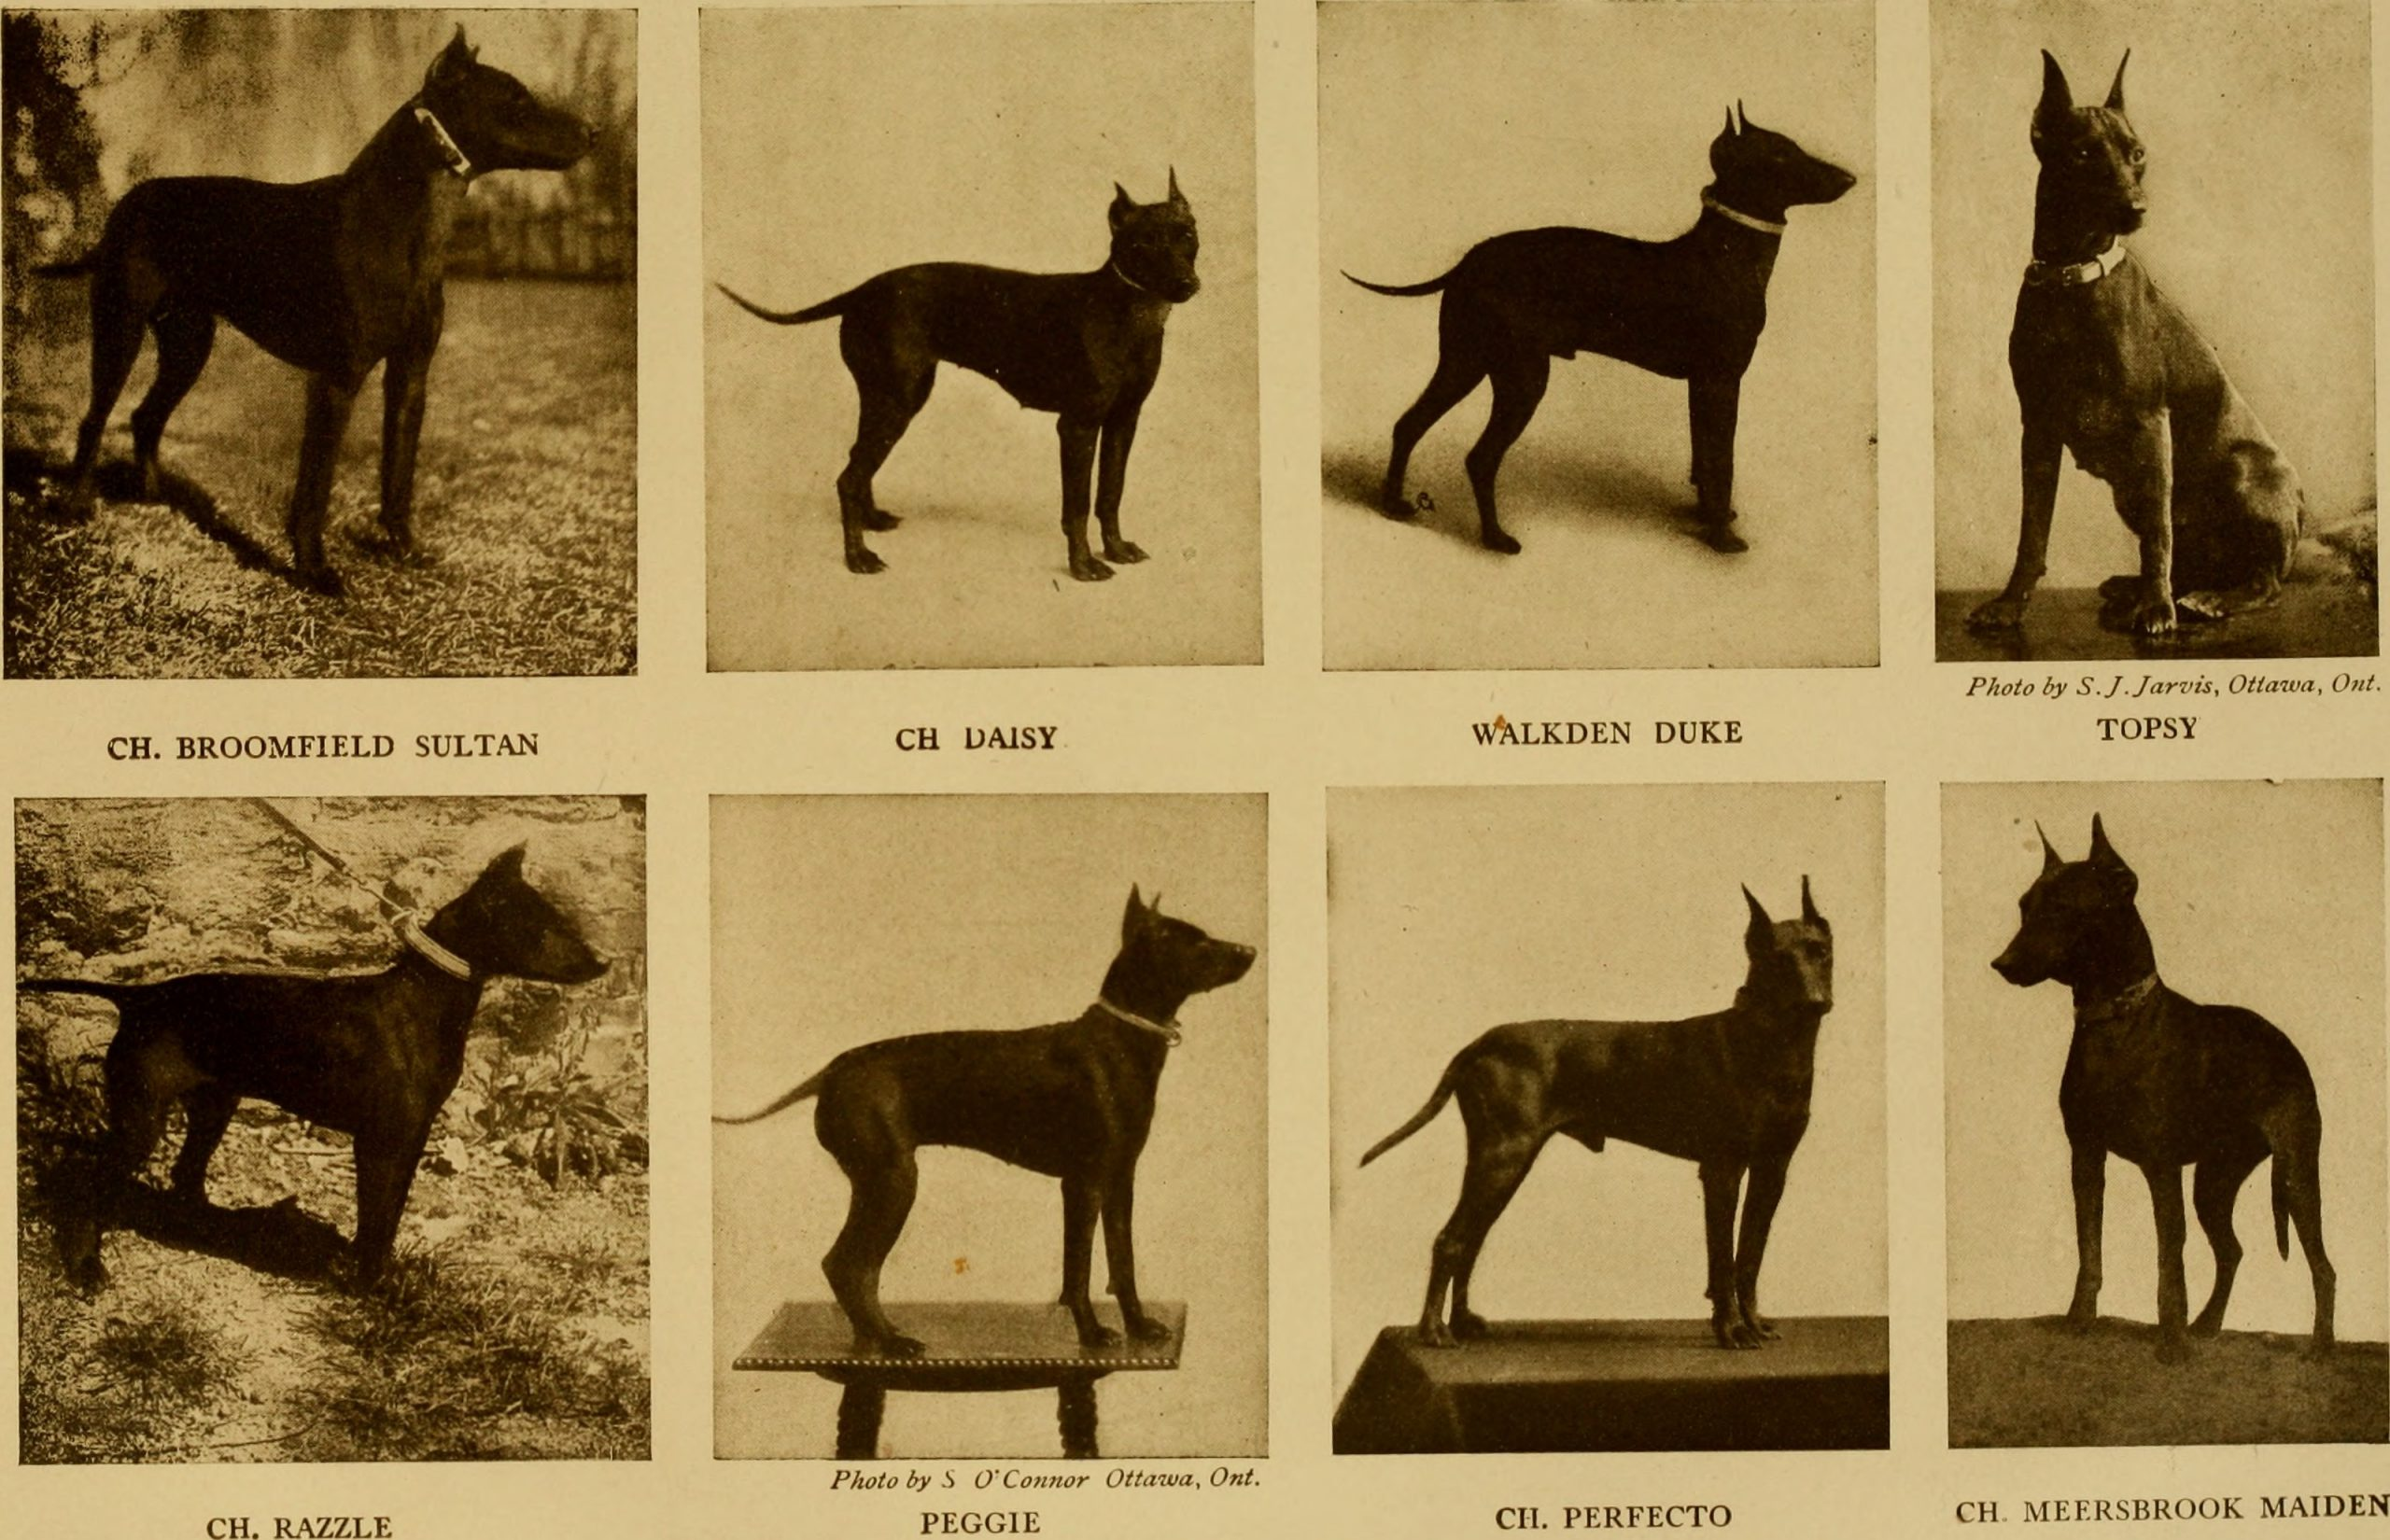 Famous Dogs through history